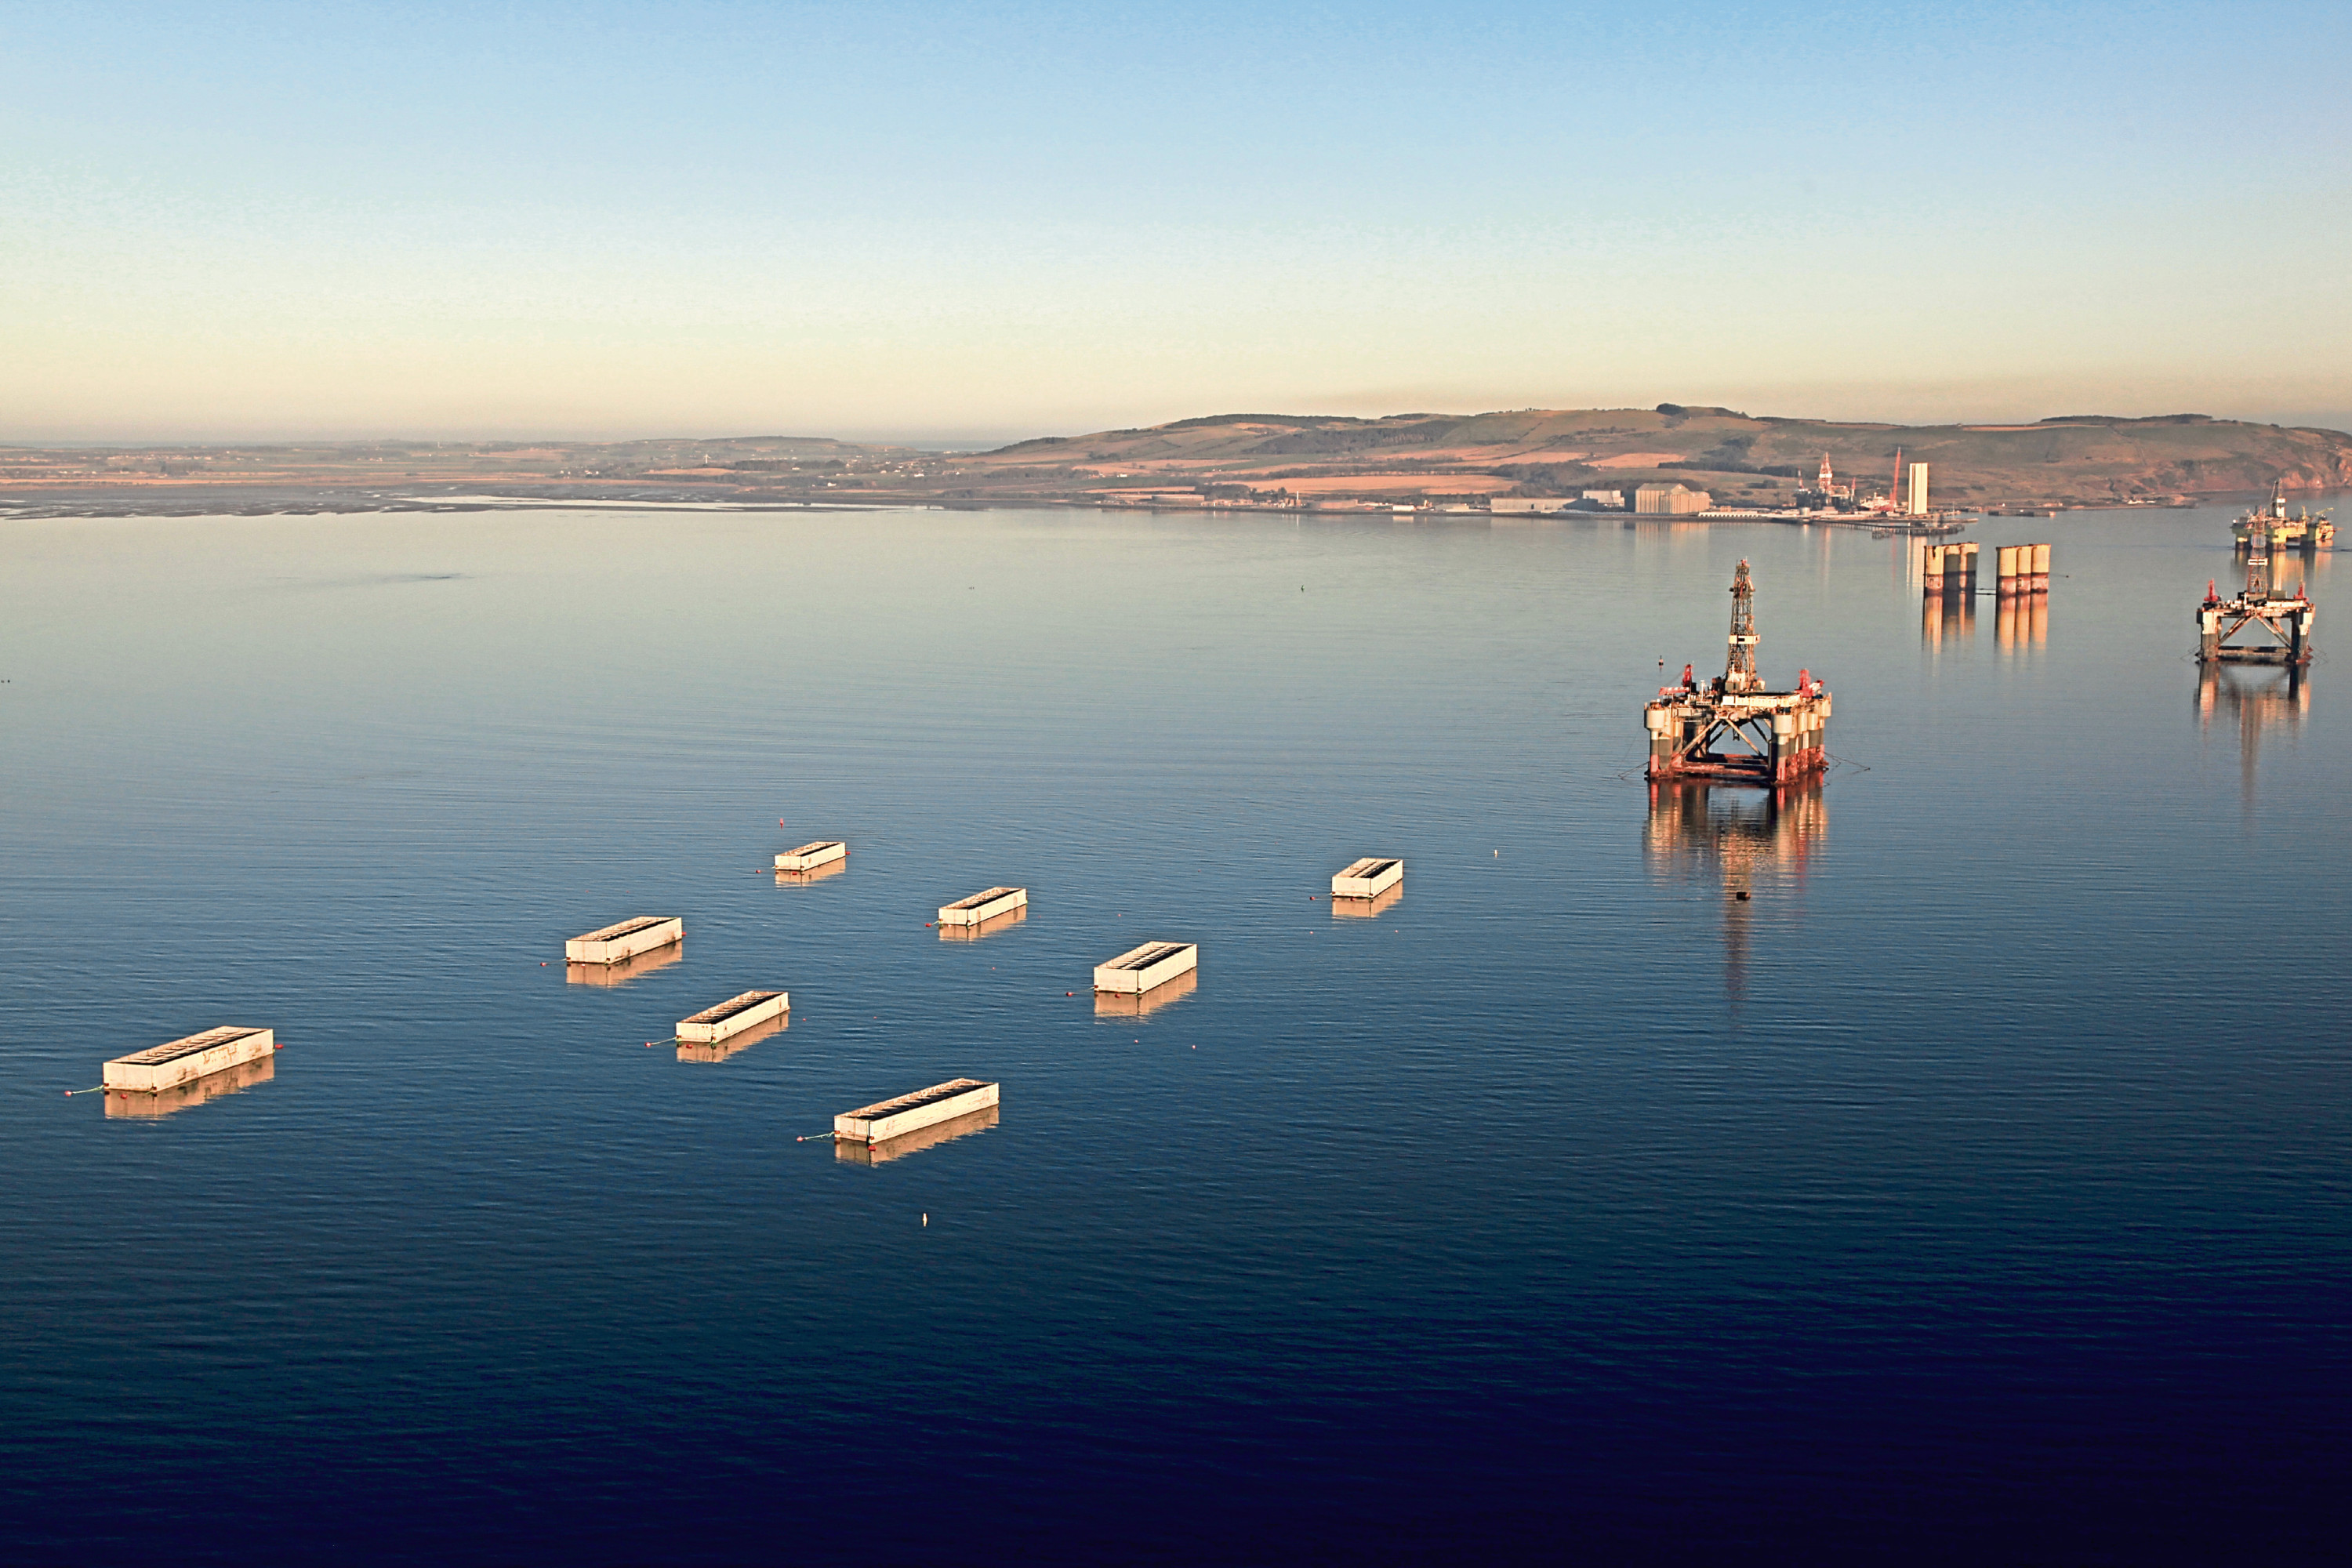 Port of Cromarty Firth takes delivery of millions of tonnes of infrastructure materials for new construction projects across the Highlands